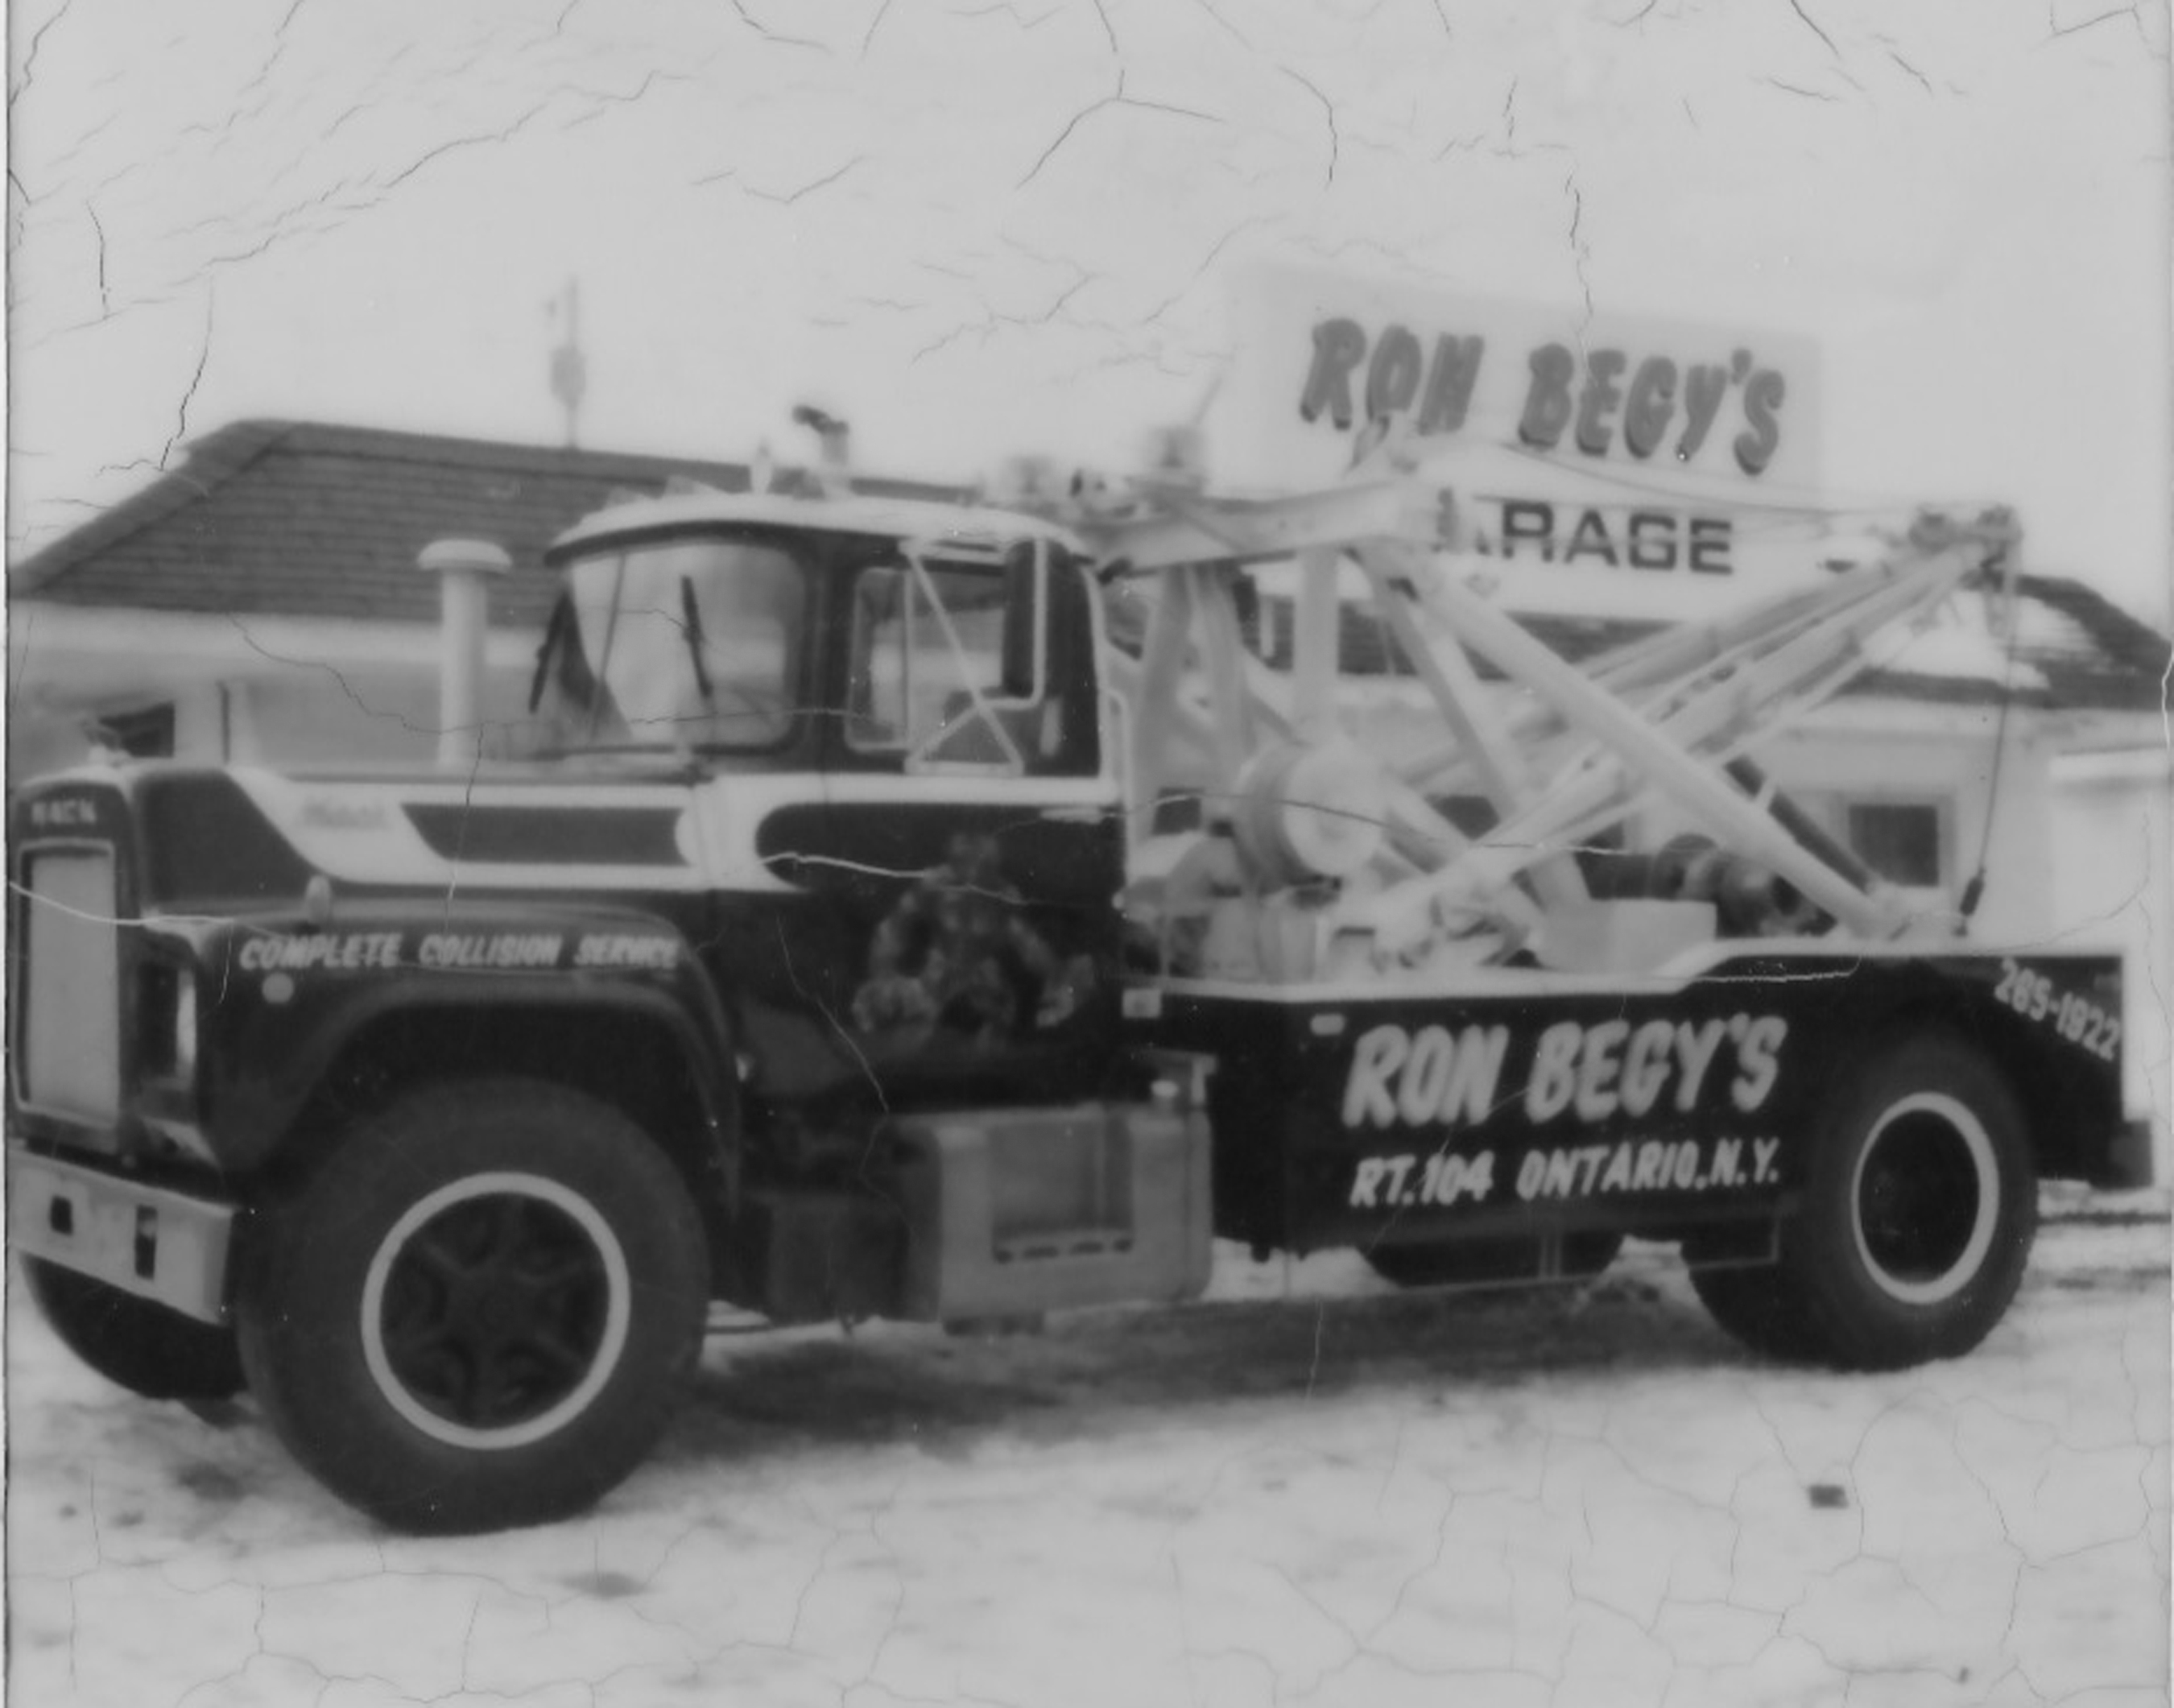 Ron Begy's Truck